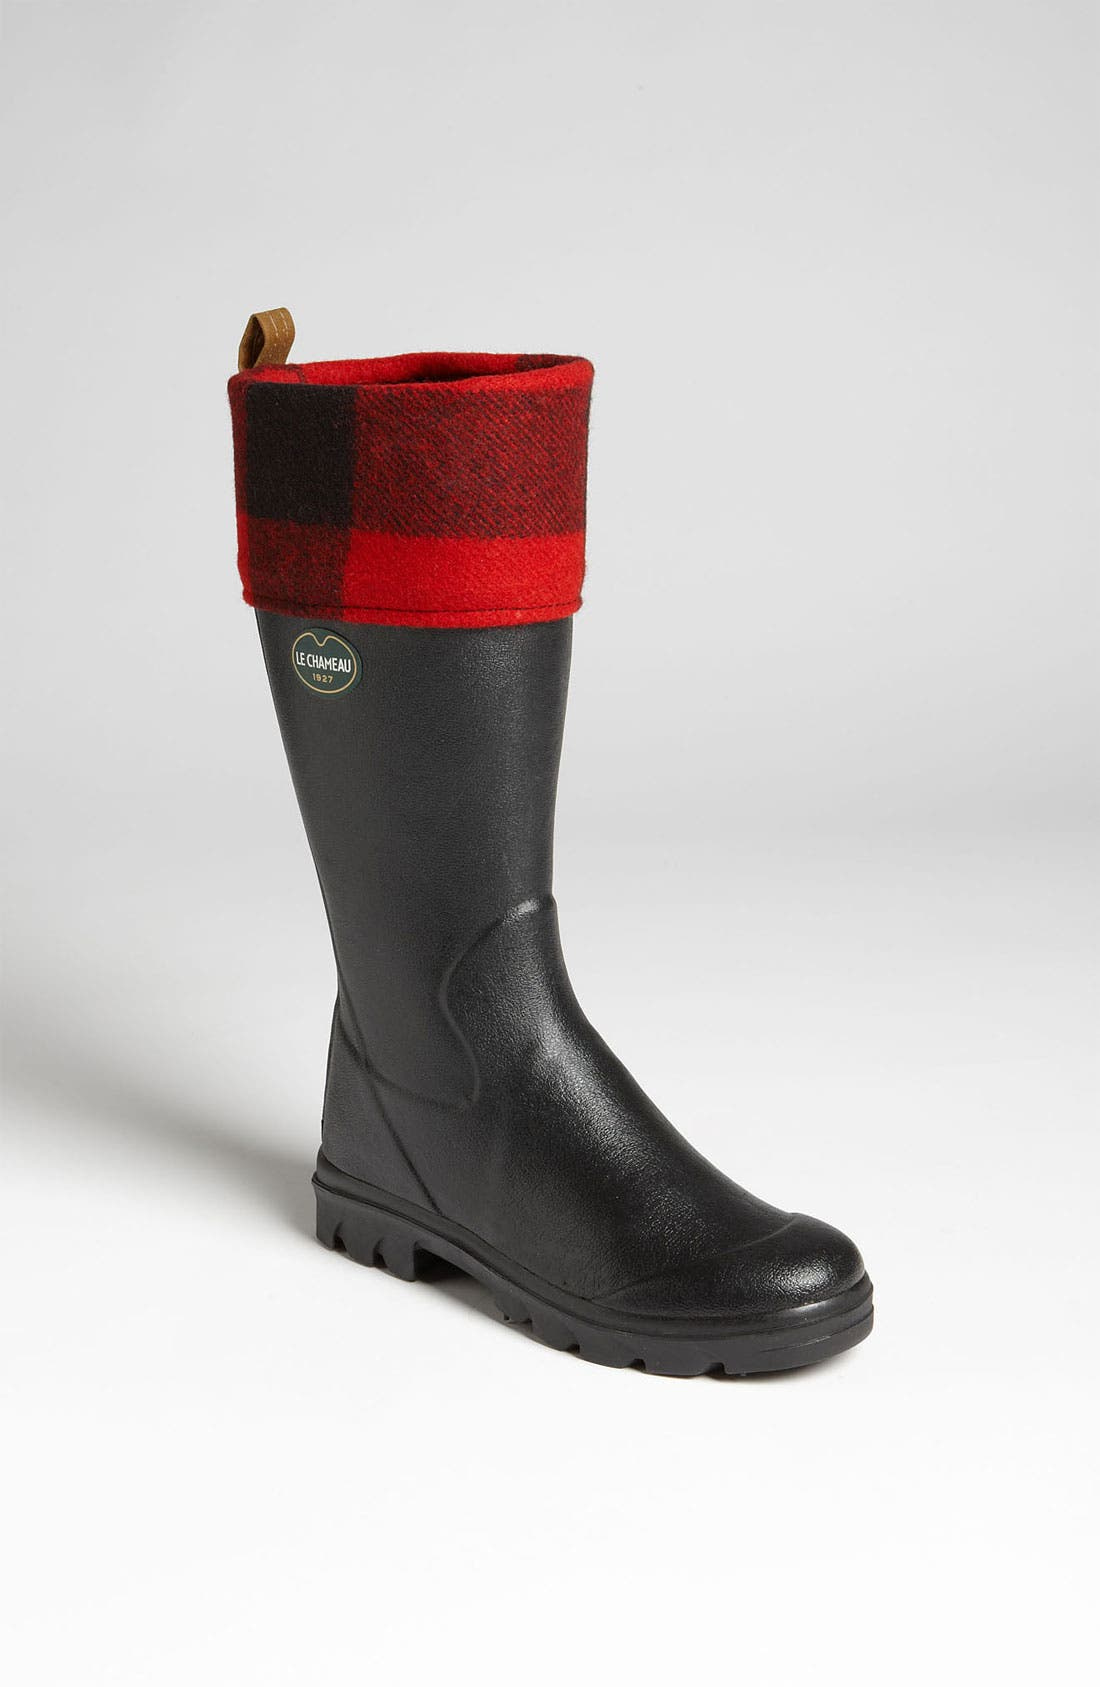 Alternate Image 1 Selected - Le Chameau 'Filson Anjou' Rain Boot (Women)